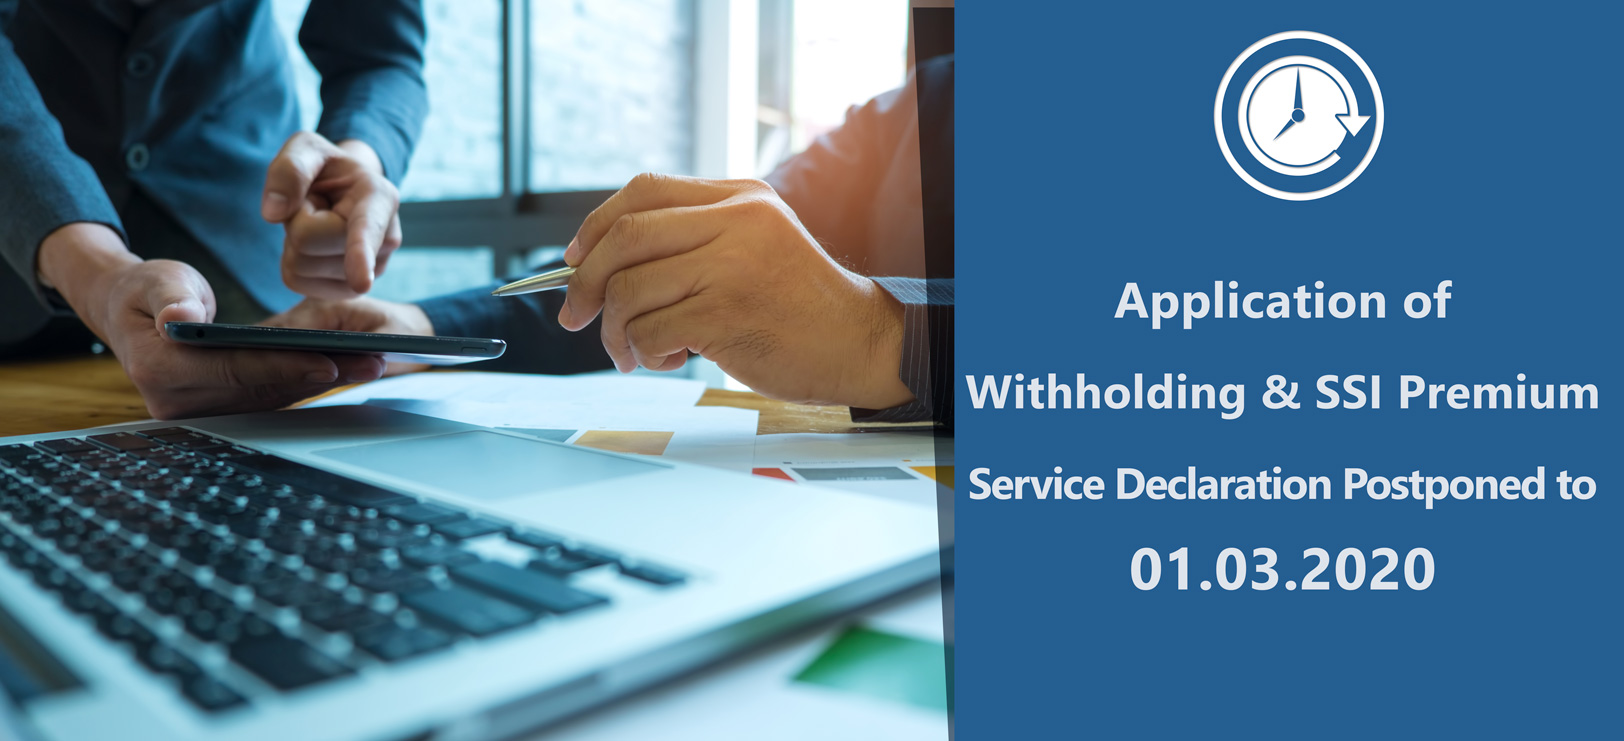 Application of Withholding and Premium Service Declaration in Turkey Has Been Postponed to 01.03.2020